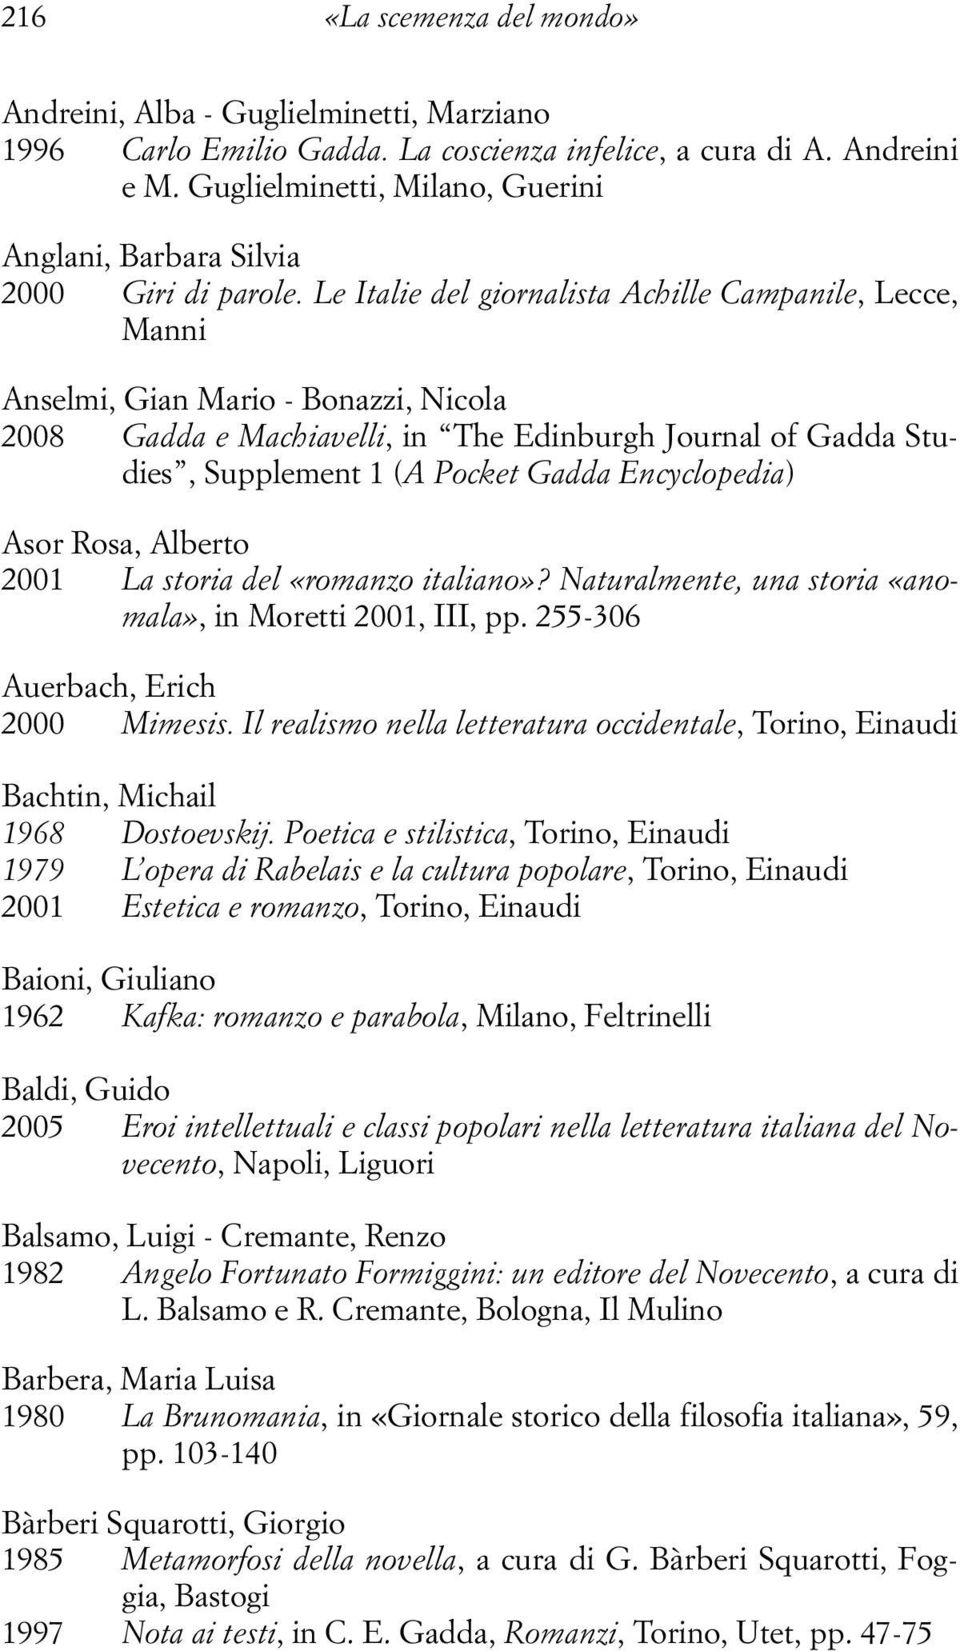 Le Italie del giornalista Achille Campanile, Lecce, Manni Anselmi, Gian Mario - Bonazzi, Nicola 2008 Gadda e Machiavelli, in The Edinburgh Journal of Gadda Studies, Supplement 1 (A Pocket Gadda